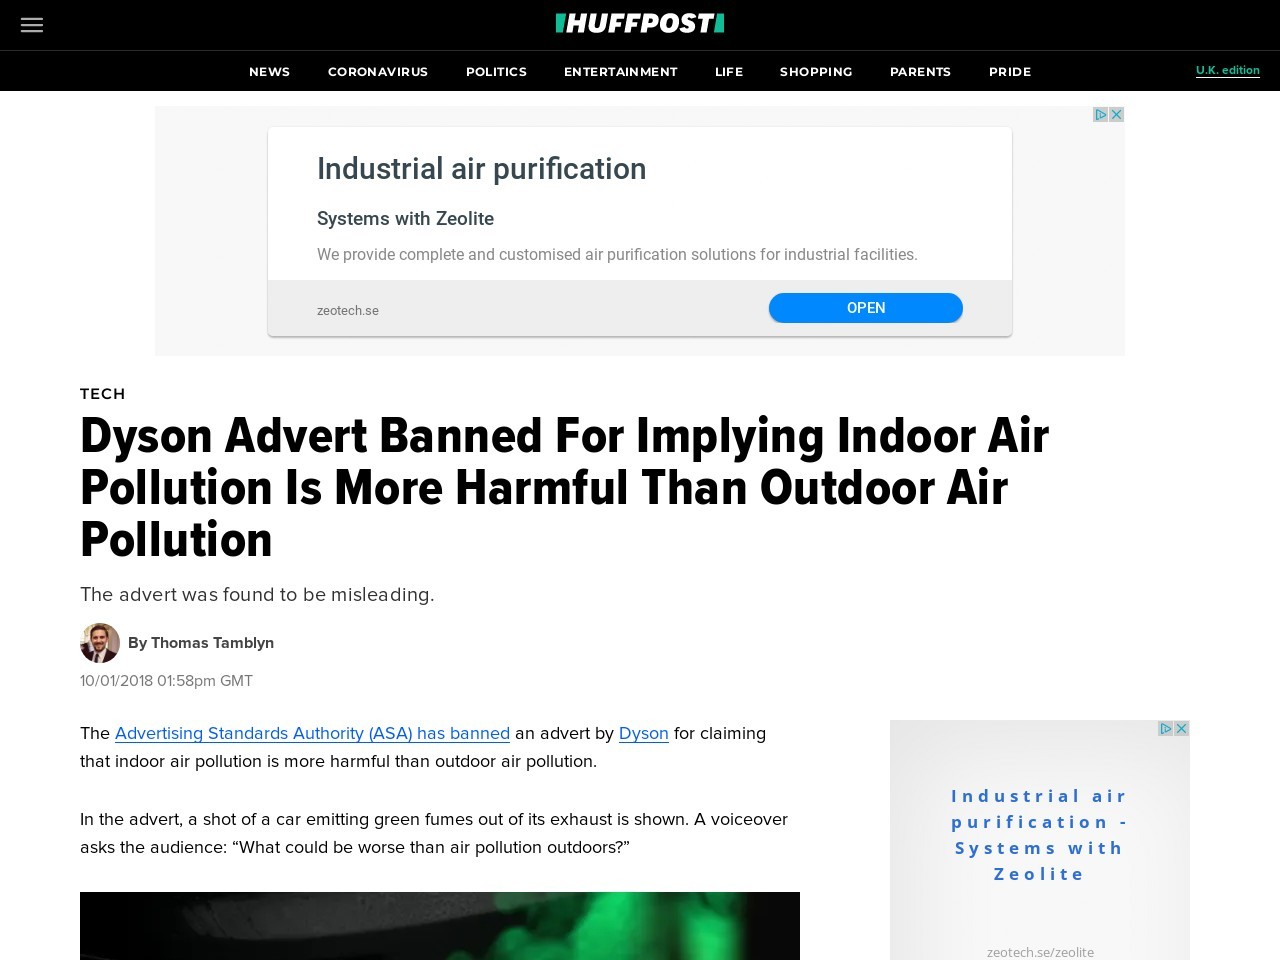 Dyson Advert Banned For Implying Indoor Air Pollution Is More Harmful Than Outdoor Air Pollution